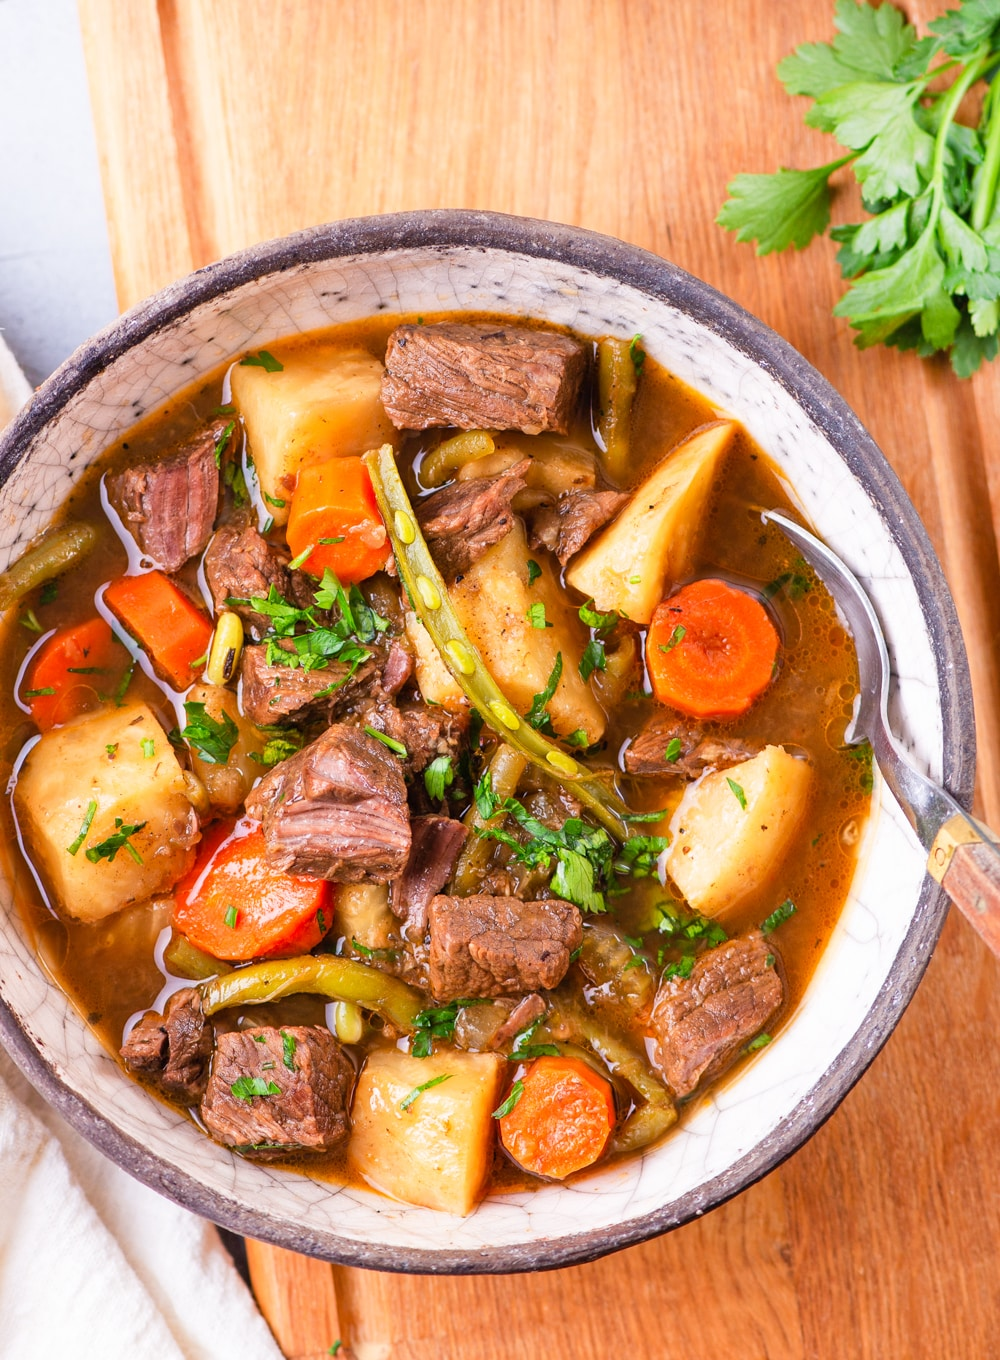 A bowl of beef stew with topped with fresh herbs.